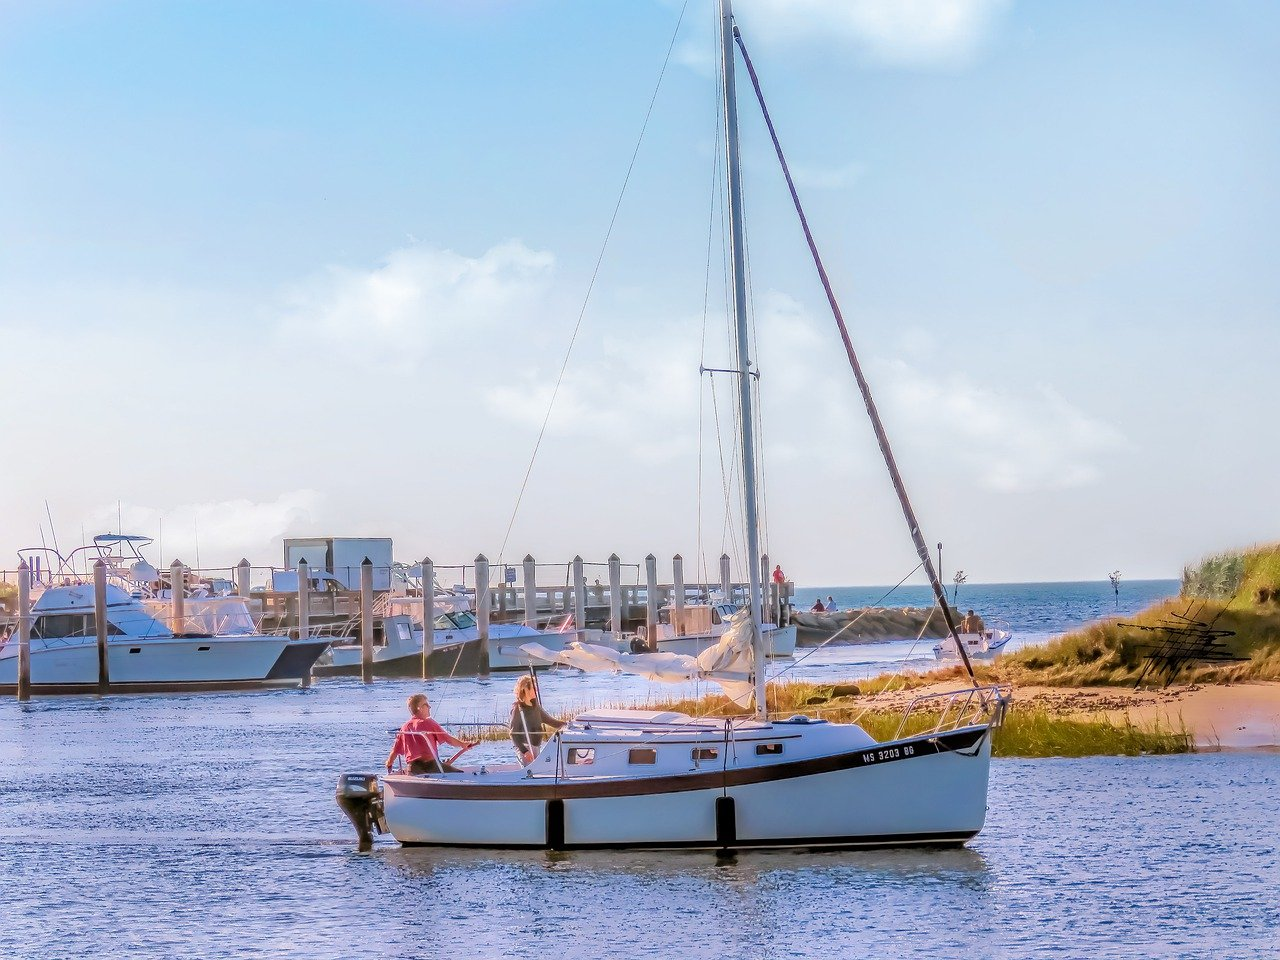 5 Awesome Places To Go Sailing In America You Didn't Know About